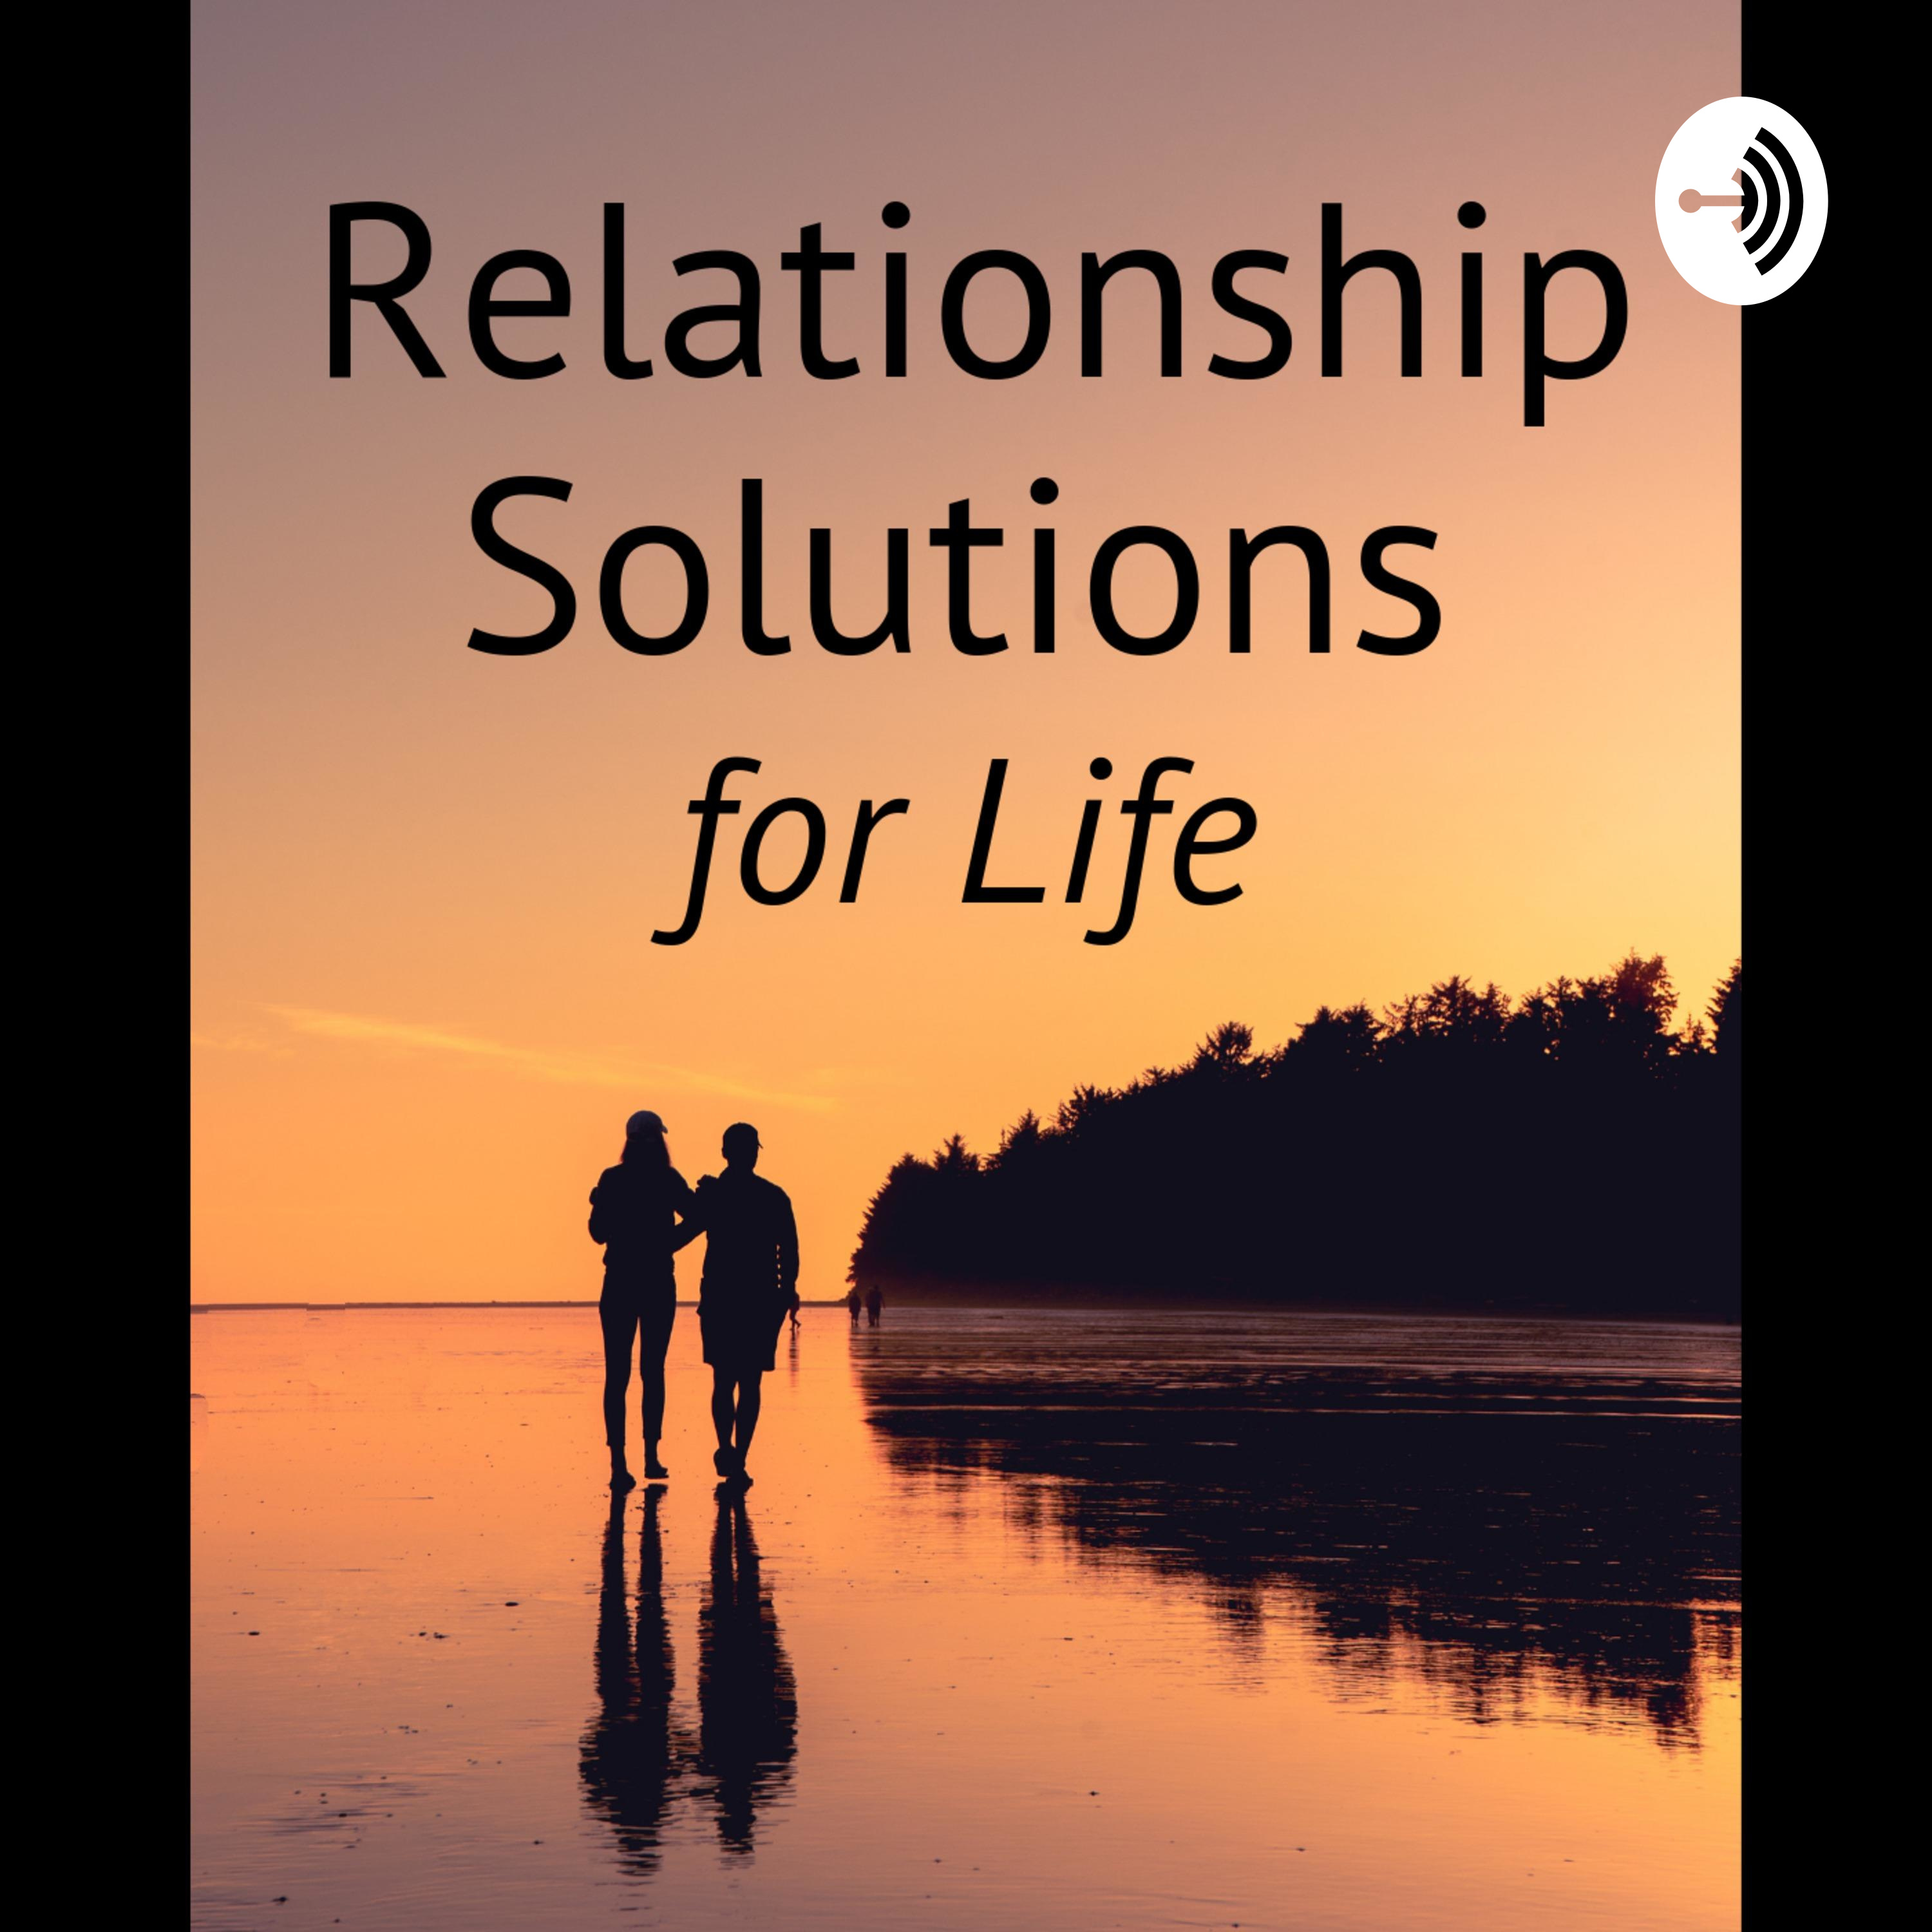 Relationship Solutions For Life | Listen Free on Castbox